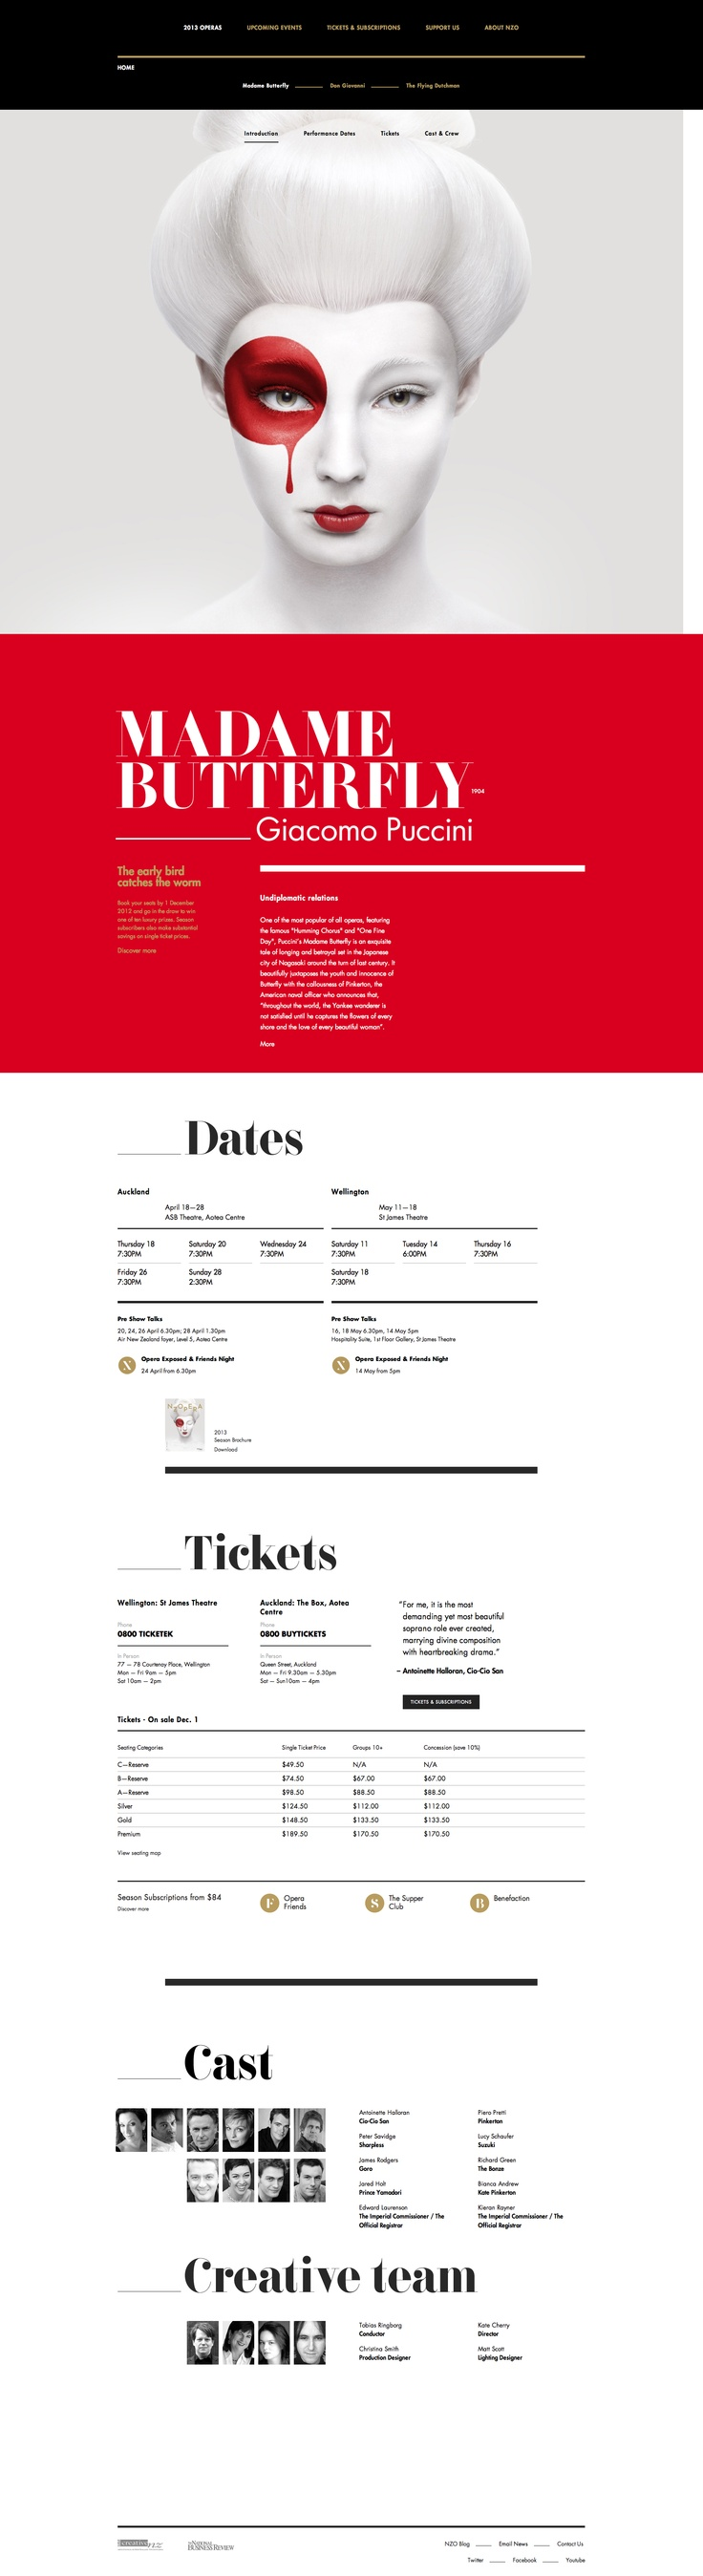 Madame Butterfly | NBR New Zealand Opera – Not a fan of the top half, but the type on the lower section is interesting